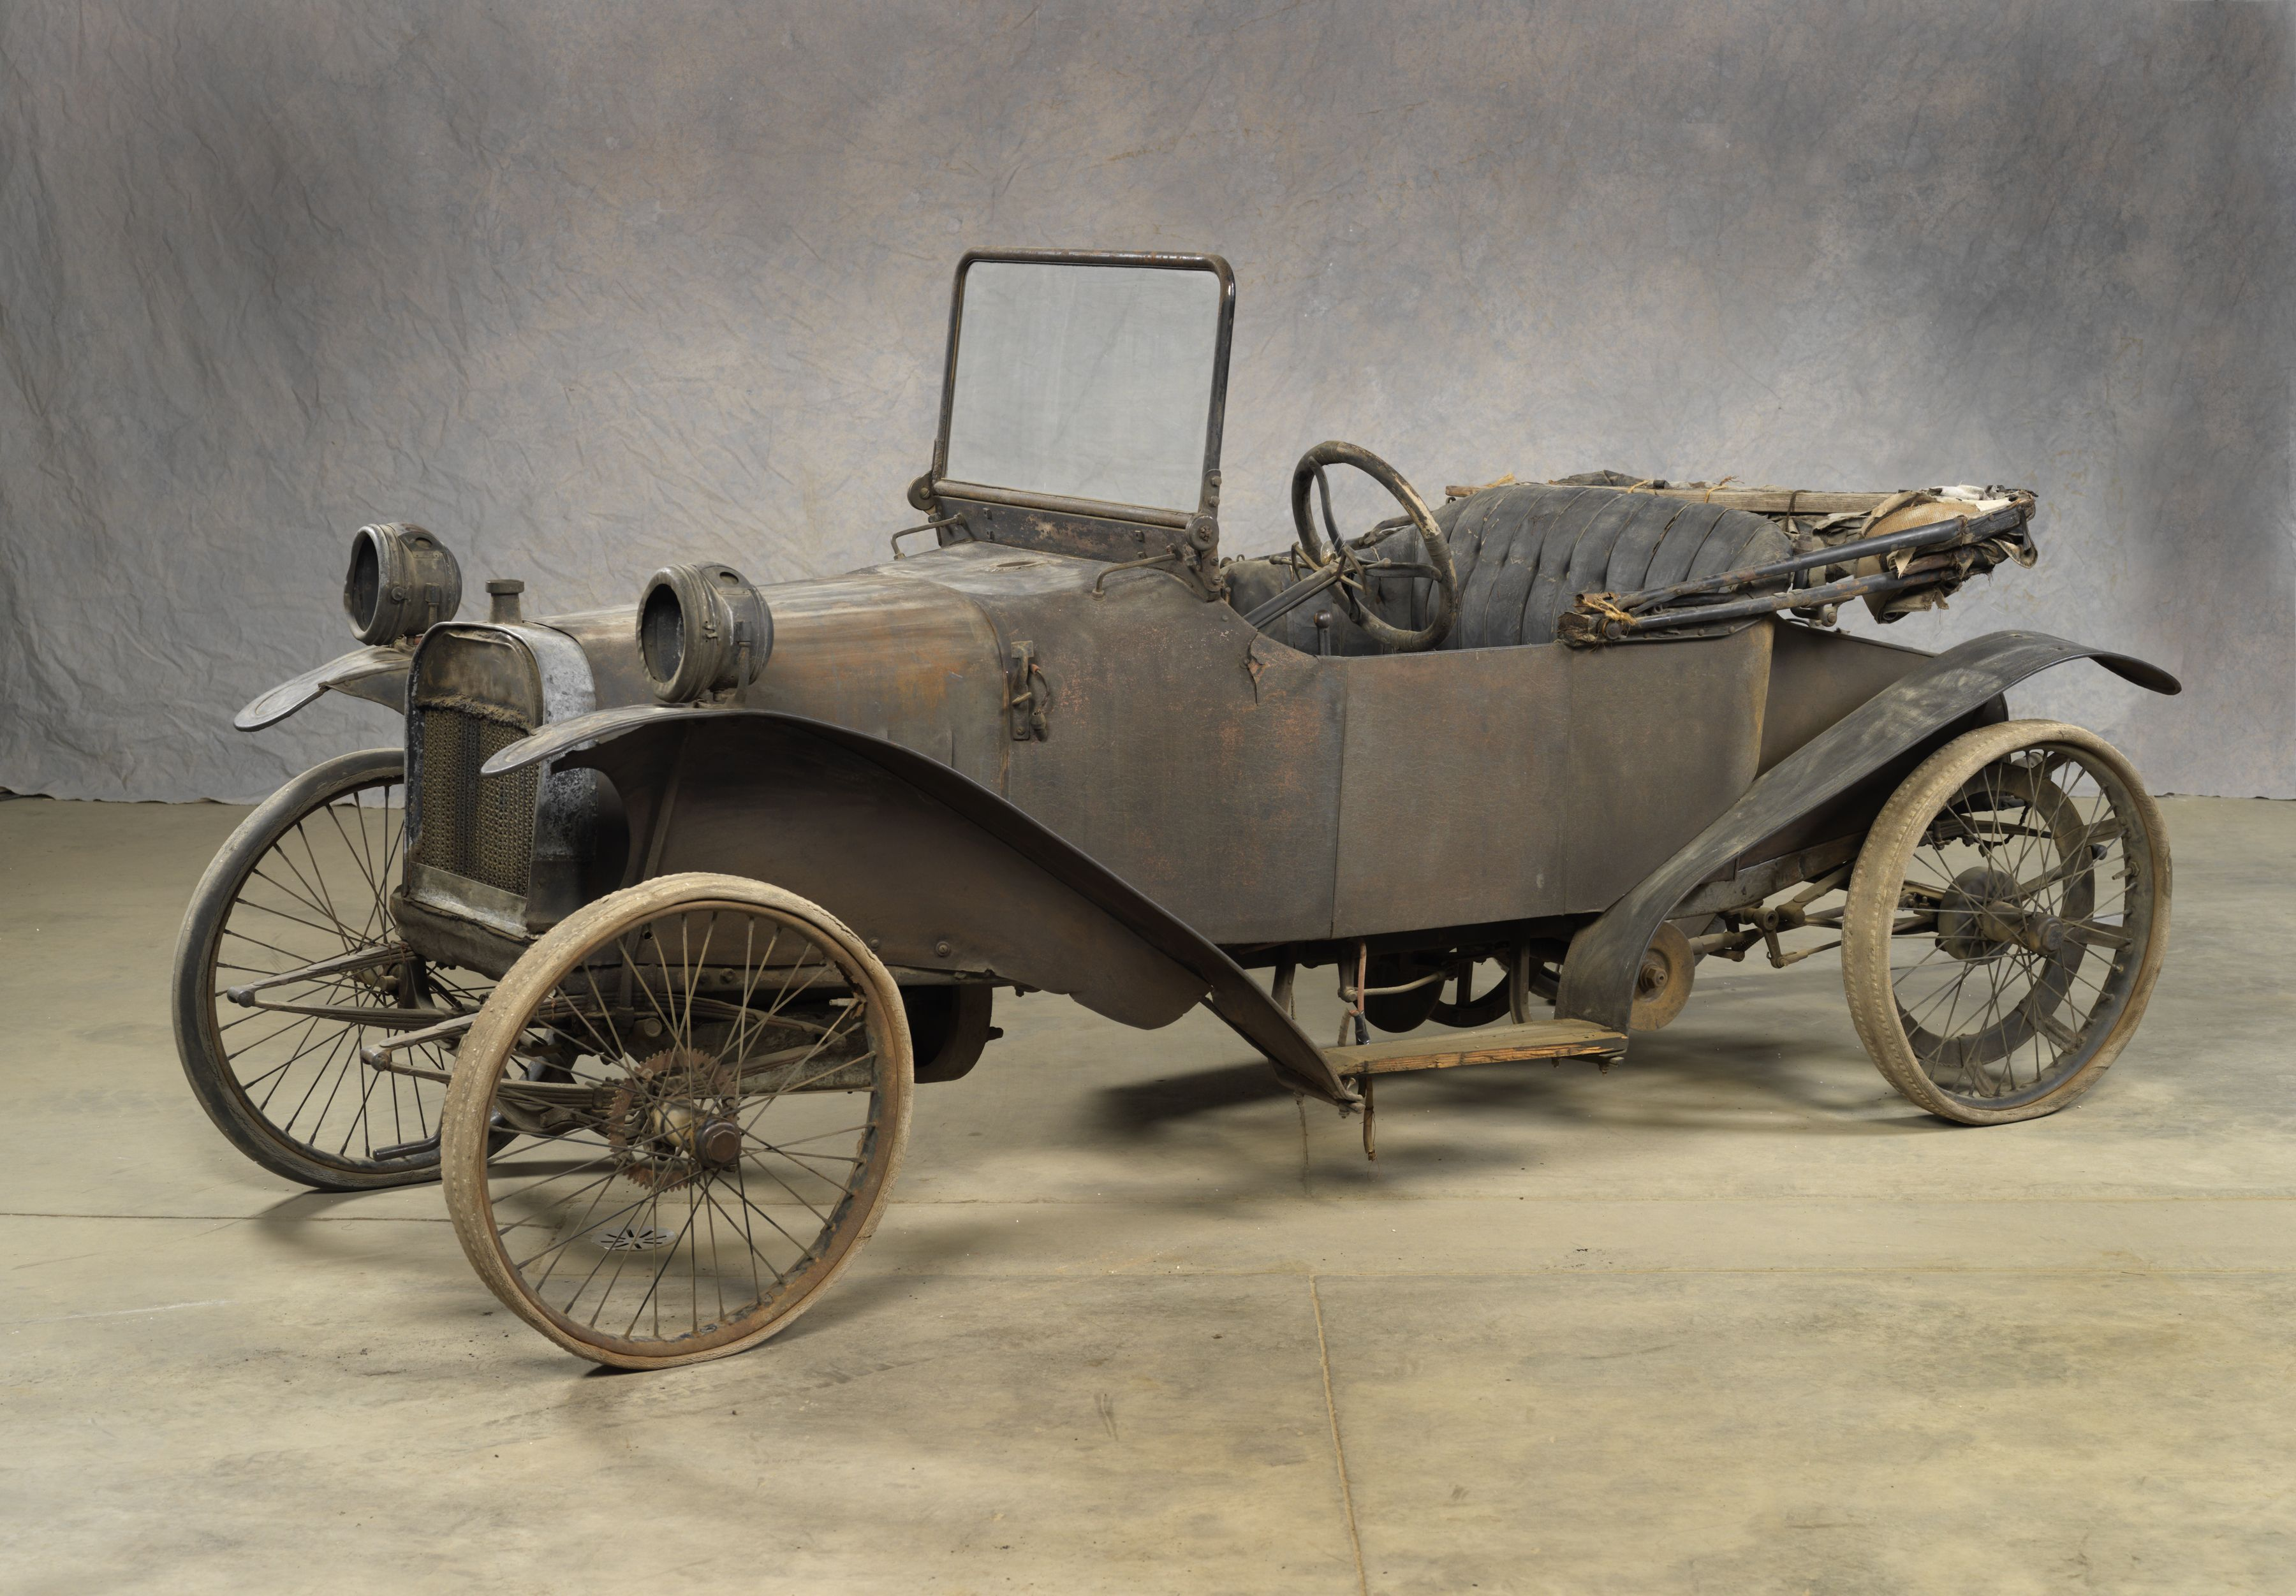 1914 ZIP CYCLECAR ROADSTER In 1913, a new class of